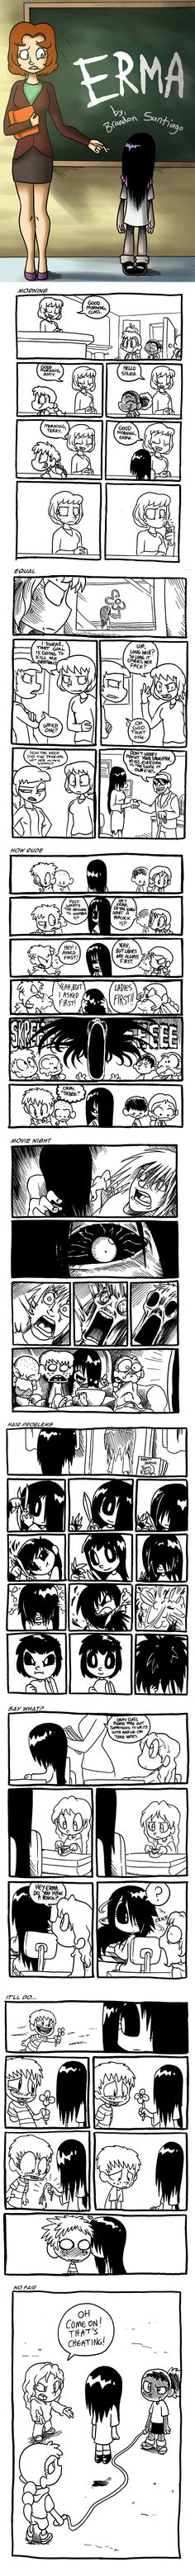 ERMA Issue 1 by BJSinc.deviantart.com on @DeviantArt